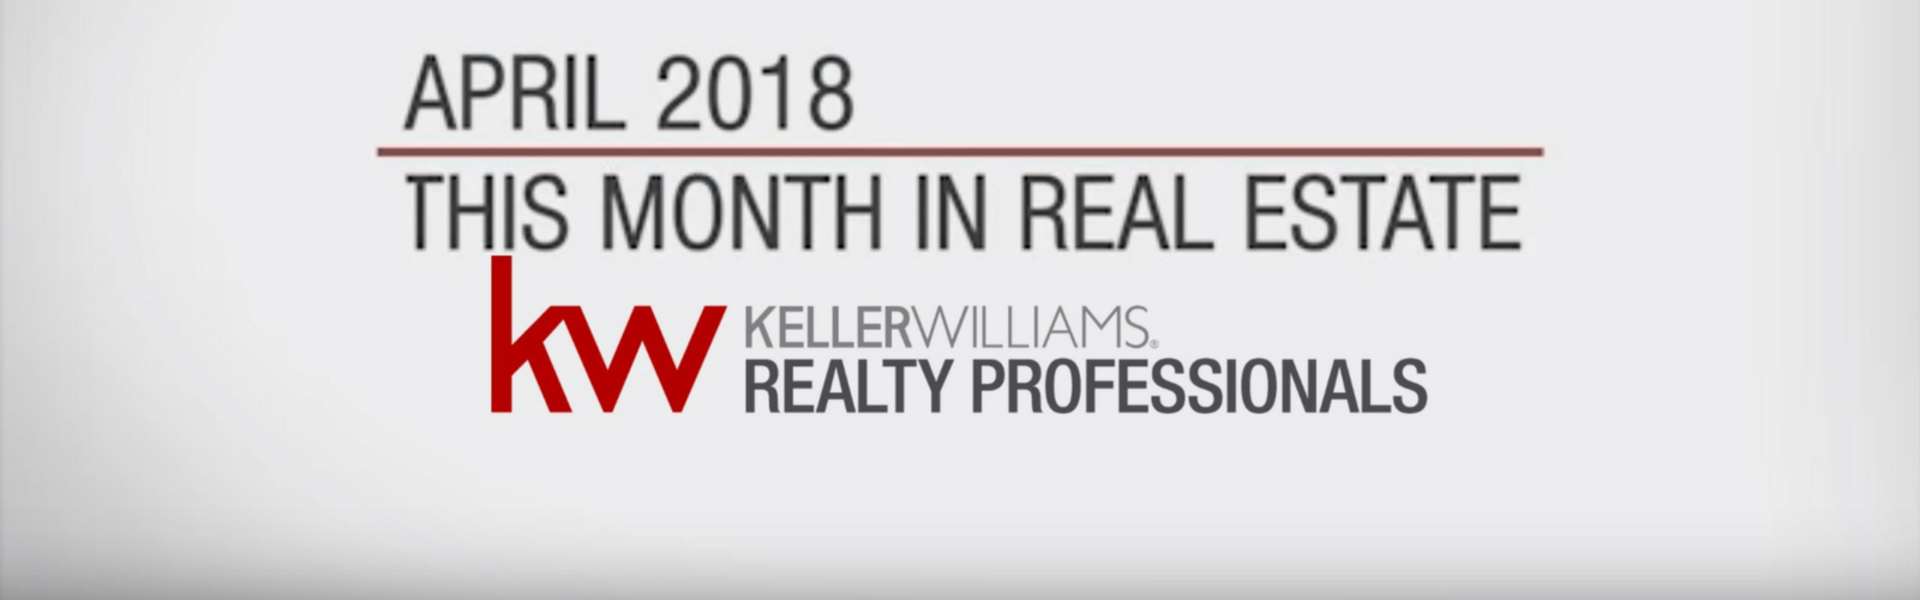 THIS MONTH IN REAL ESTATE: APRIL 2018